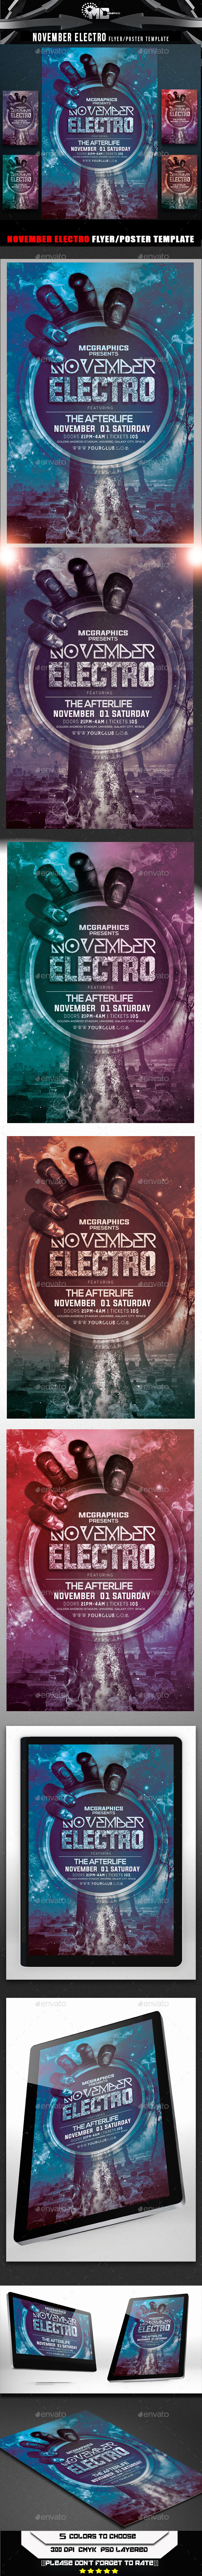 GraphicRiver November Electro Flyer Template 8867617